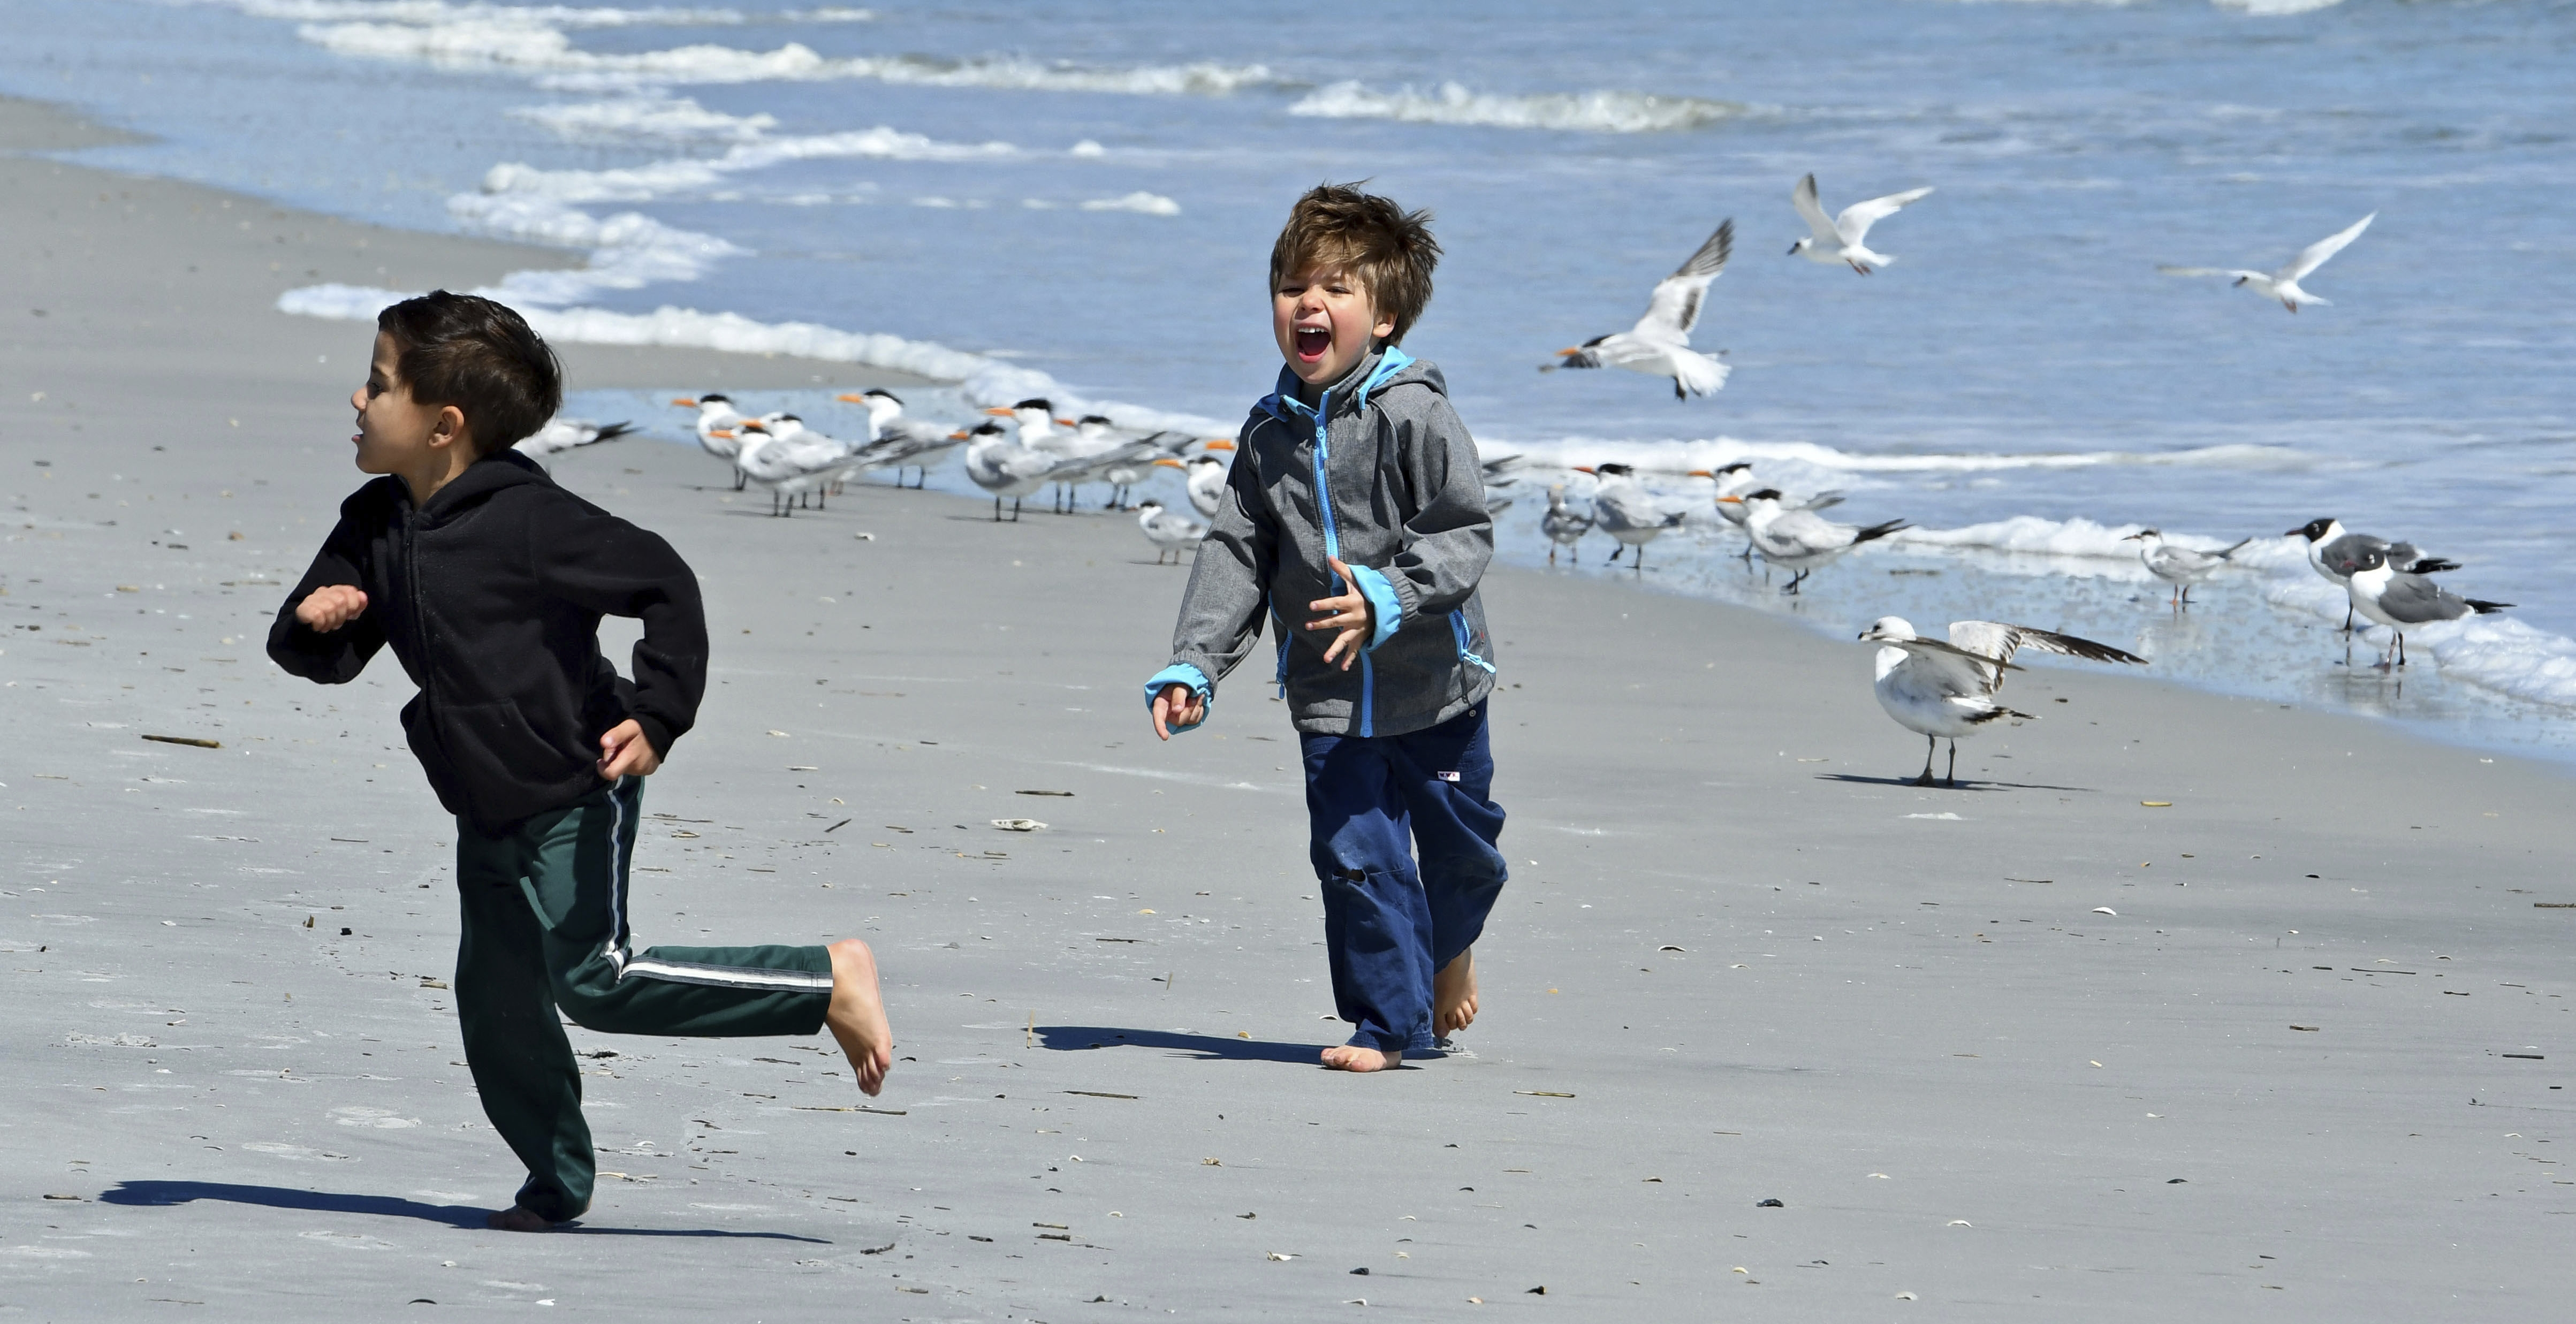 Local resident Marco, 5, (from left) and his cousin Lucas, 5, visiting from his home in Finland run away after teasing a flock of sea birds into flying on Atlantic Beach, FL. On Wednesday March 15, 2017 the threat of a possible hard freeze overnight in the Jacksonville, FL  brought firewood sales, shelter preparation and even a few folks who took advantage of the sunshine to play on Atlantic Beach filled the day as people prepared for the cold in their own way.  (Bob Mack/Florida Times-Union via AP)